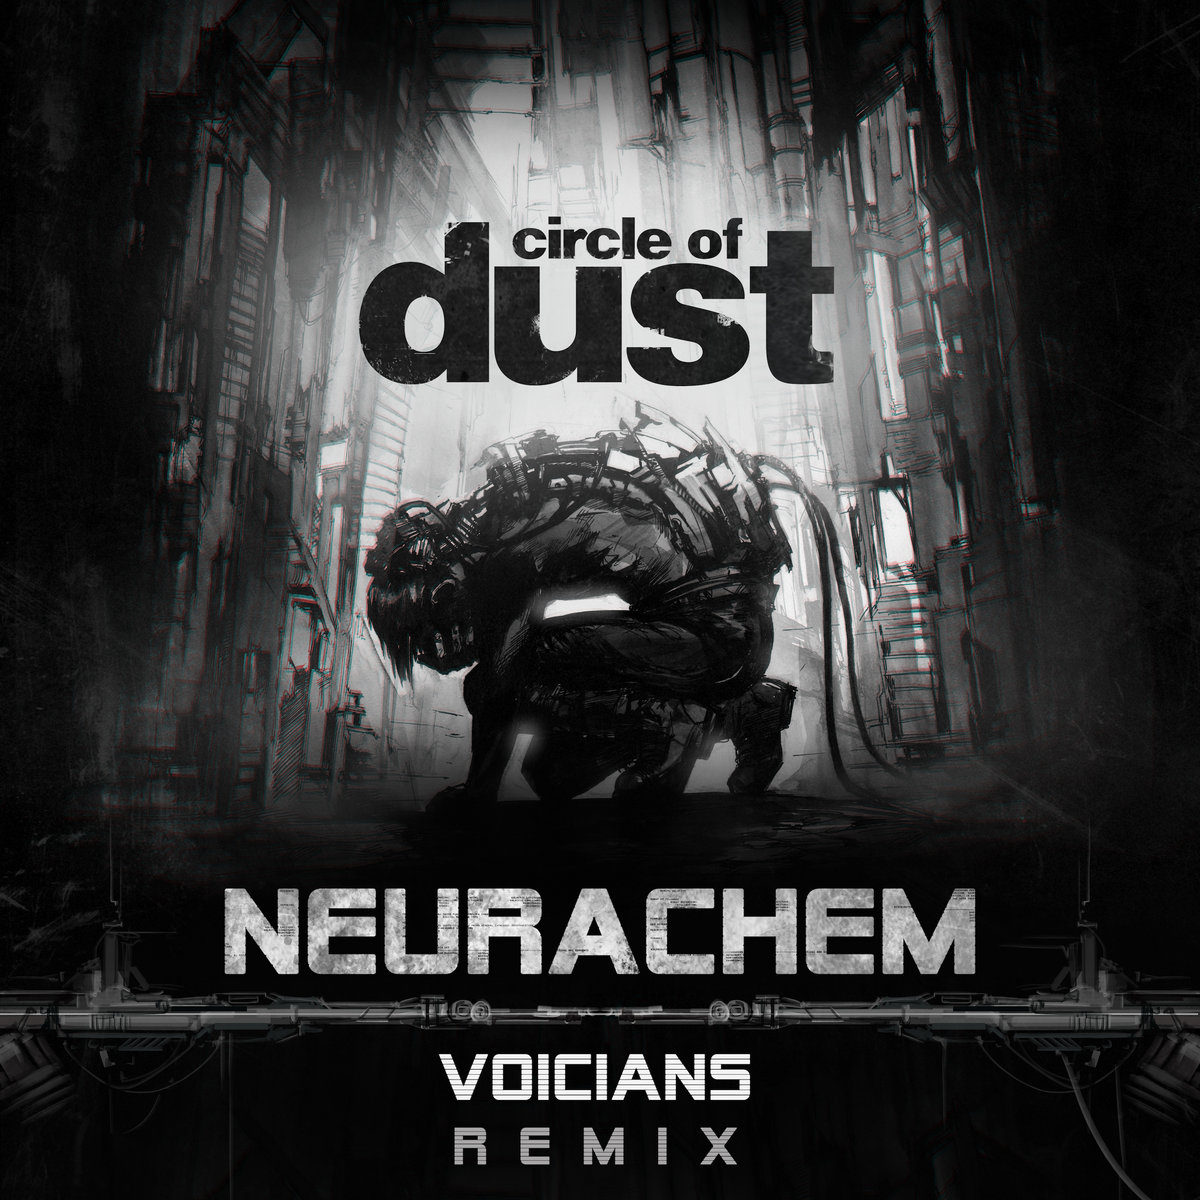 Circle of Dust - Neurachem (Voicians Remix) (Single)